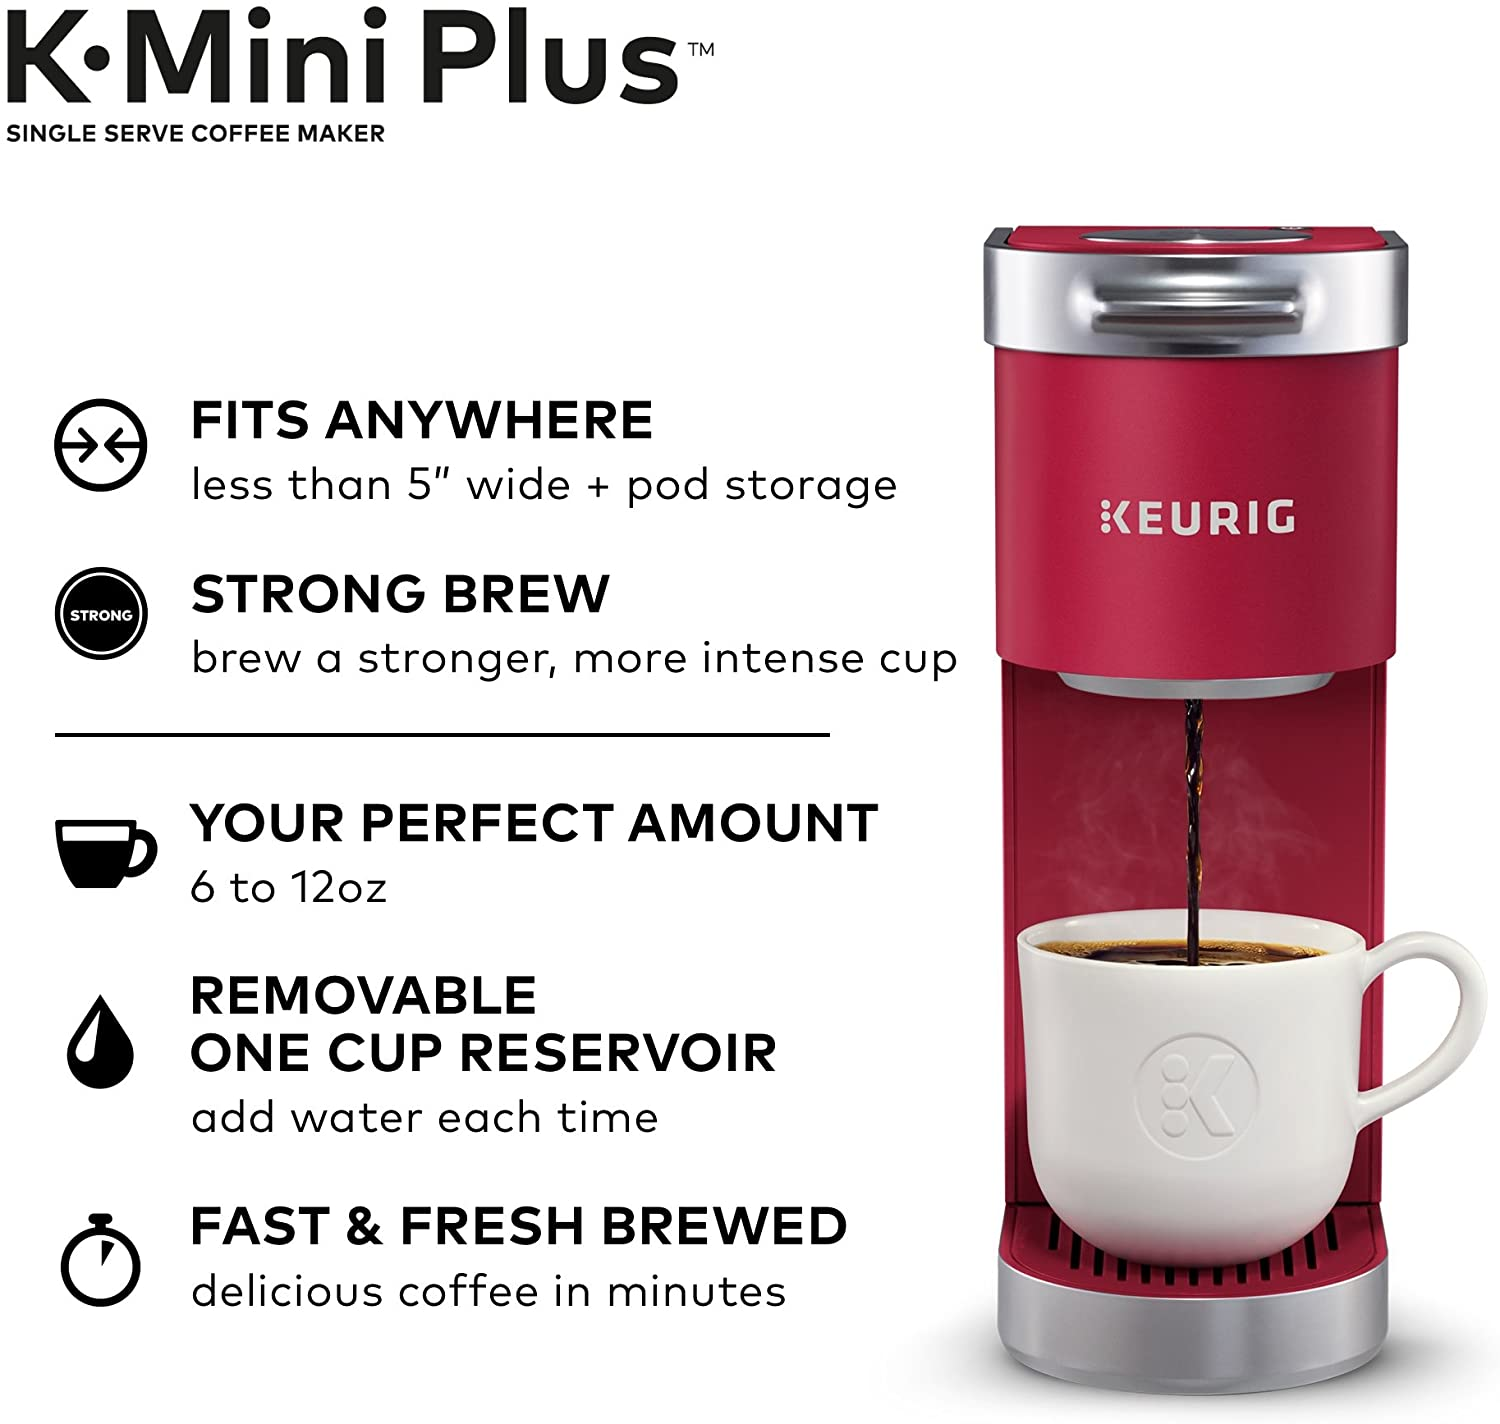 Keurig K-Mini Plus Maker Single Serve K-Cup Pod Coffee Brewer, Comes with 6 to 12 Oz. Brew Size, Storage, and Travel Mug Friendly, Cardinal Red